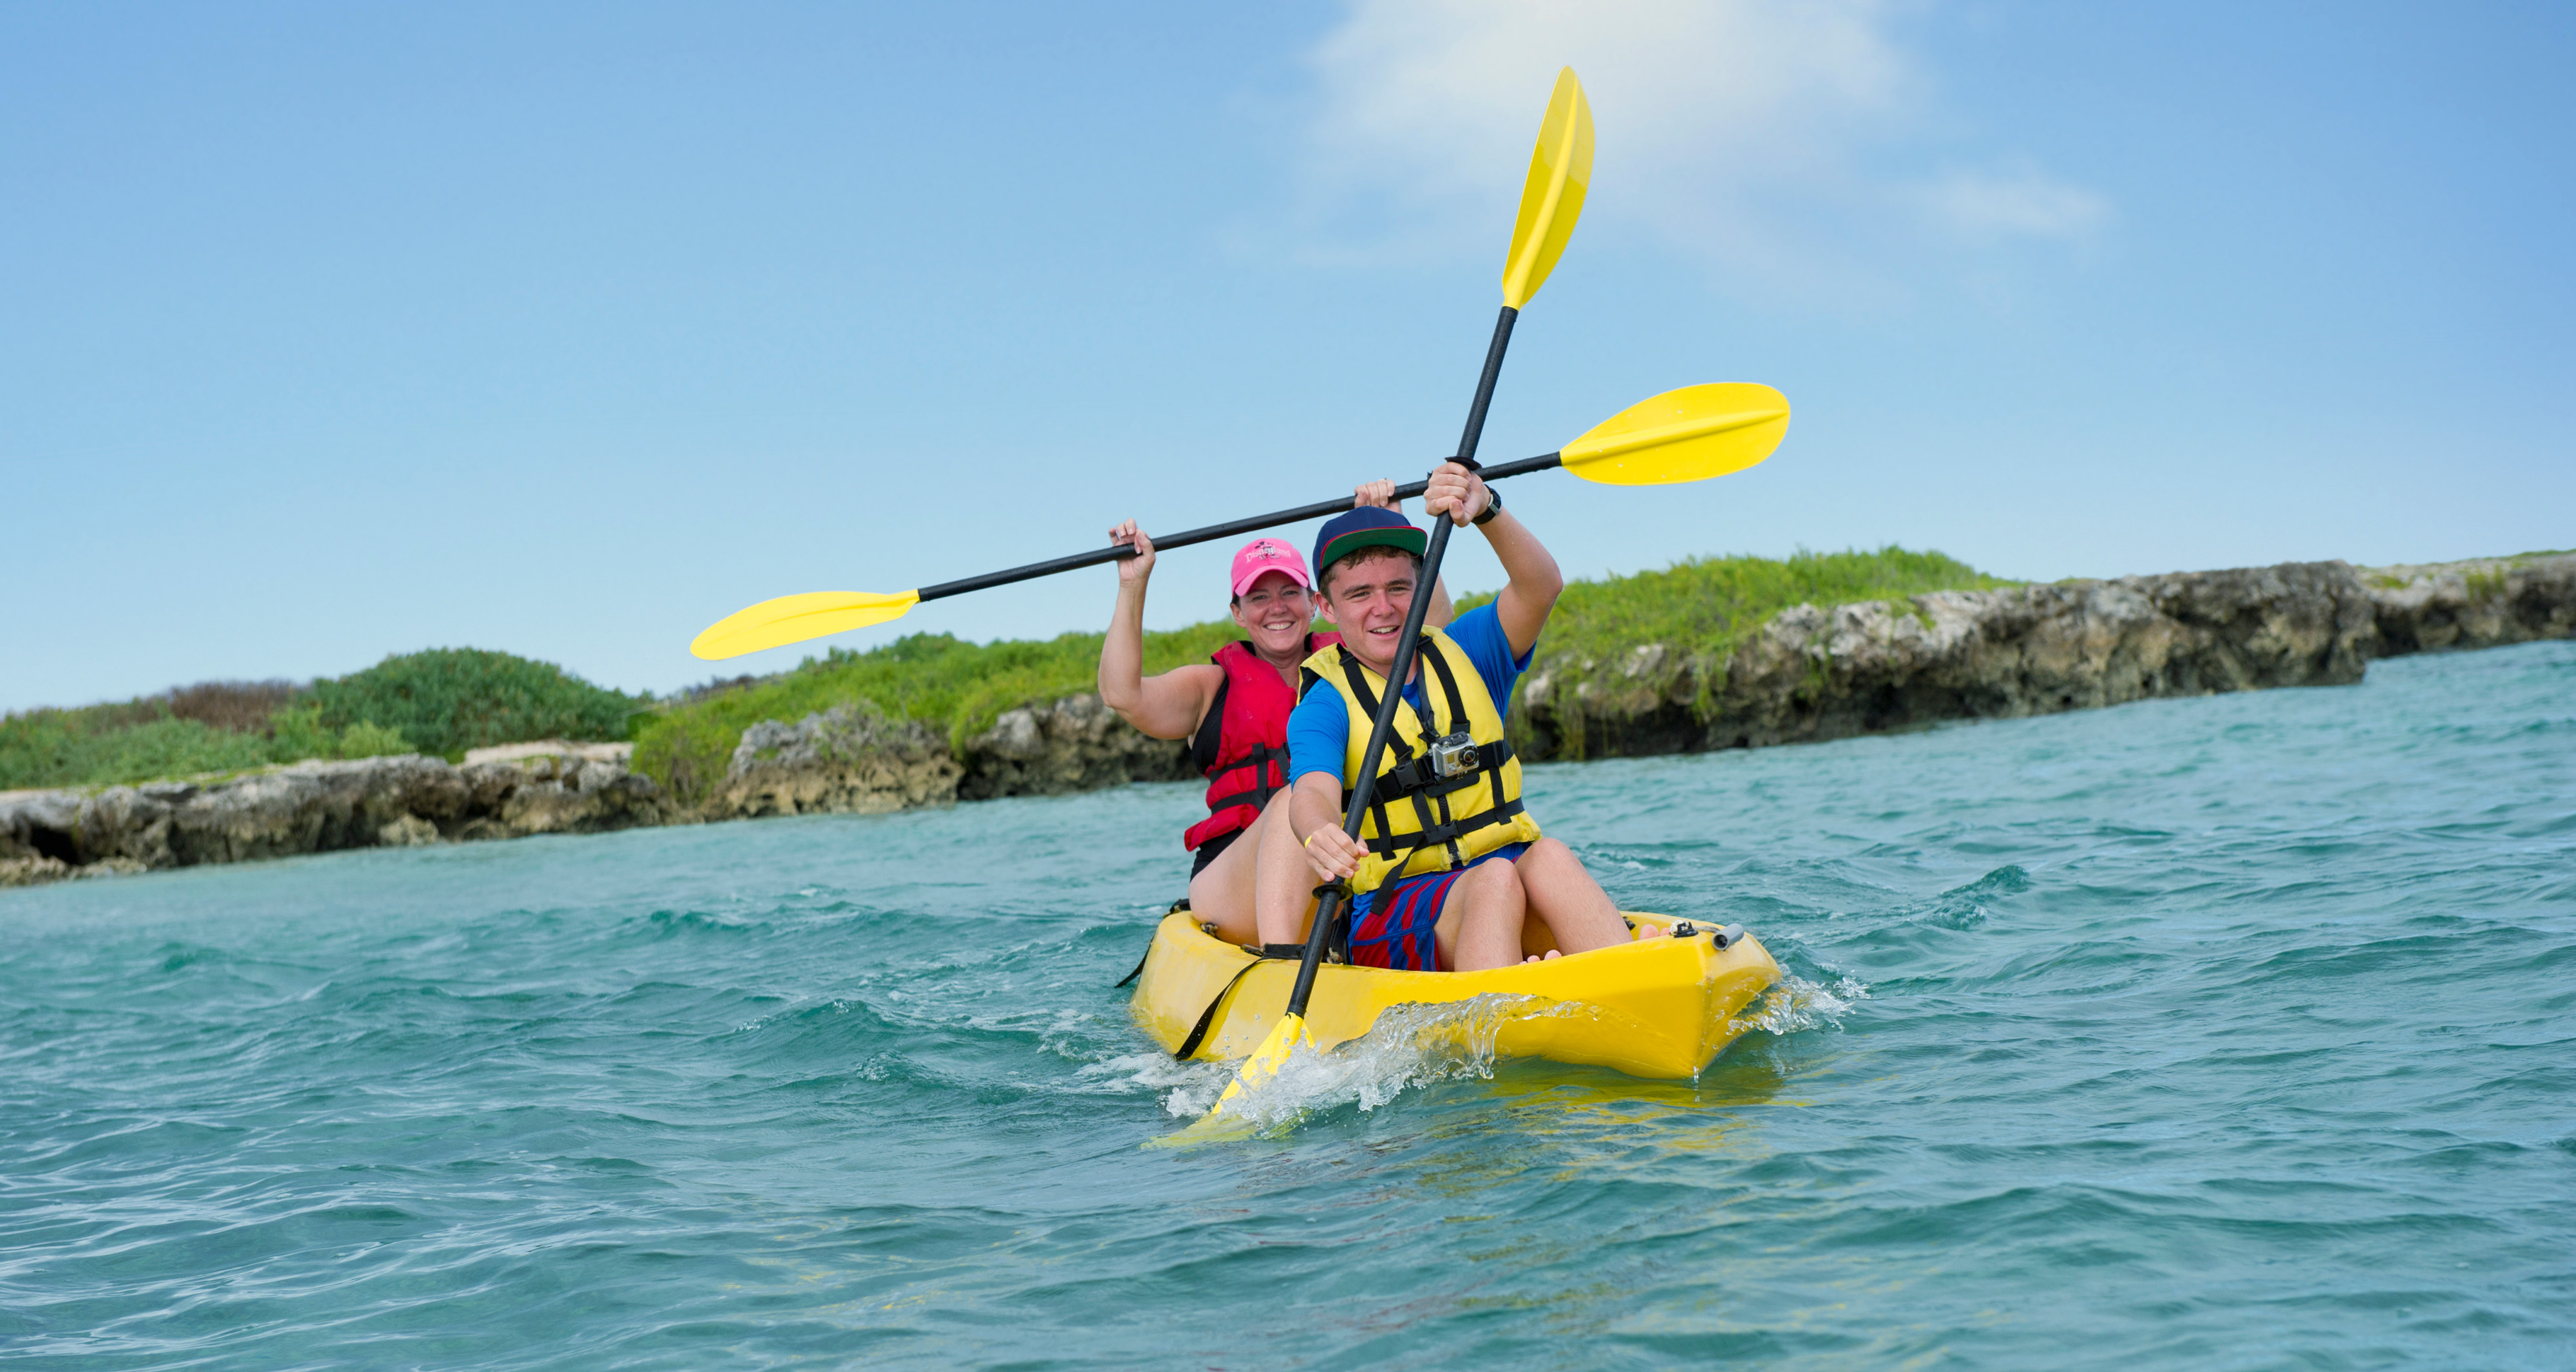 A couple paddles a kayak through the water with a rocky shore in the background